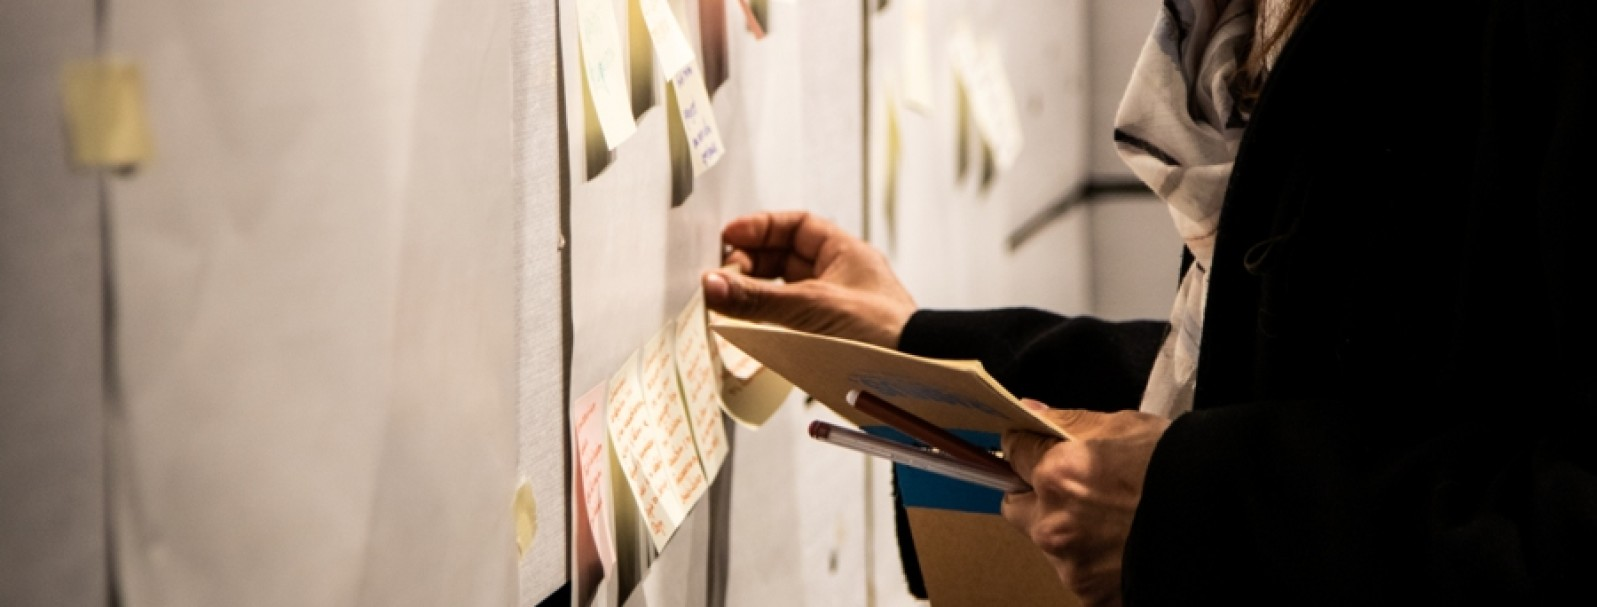 Designing the Actions of Service Design Network Greece